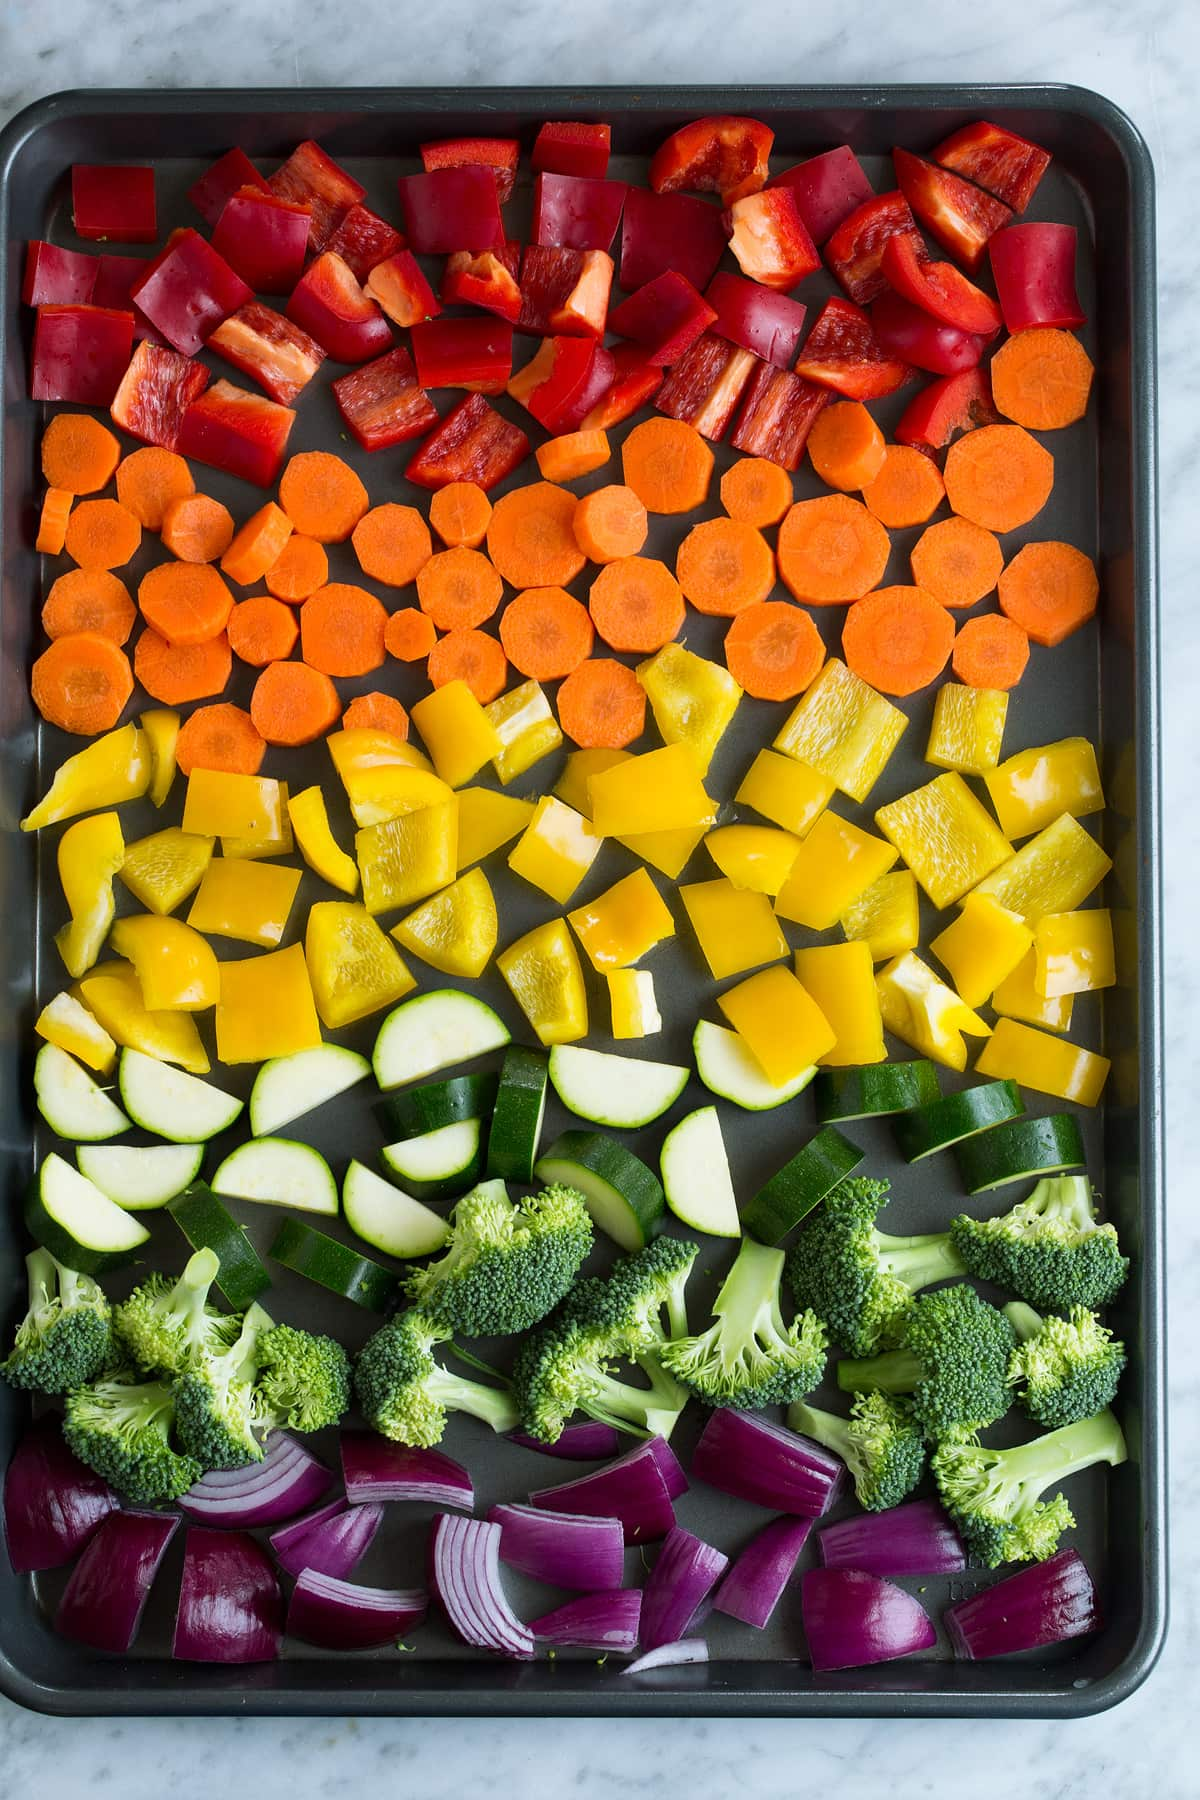 Diced vegetables on a baking sheet before oven baking.